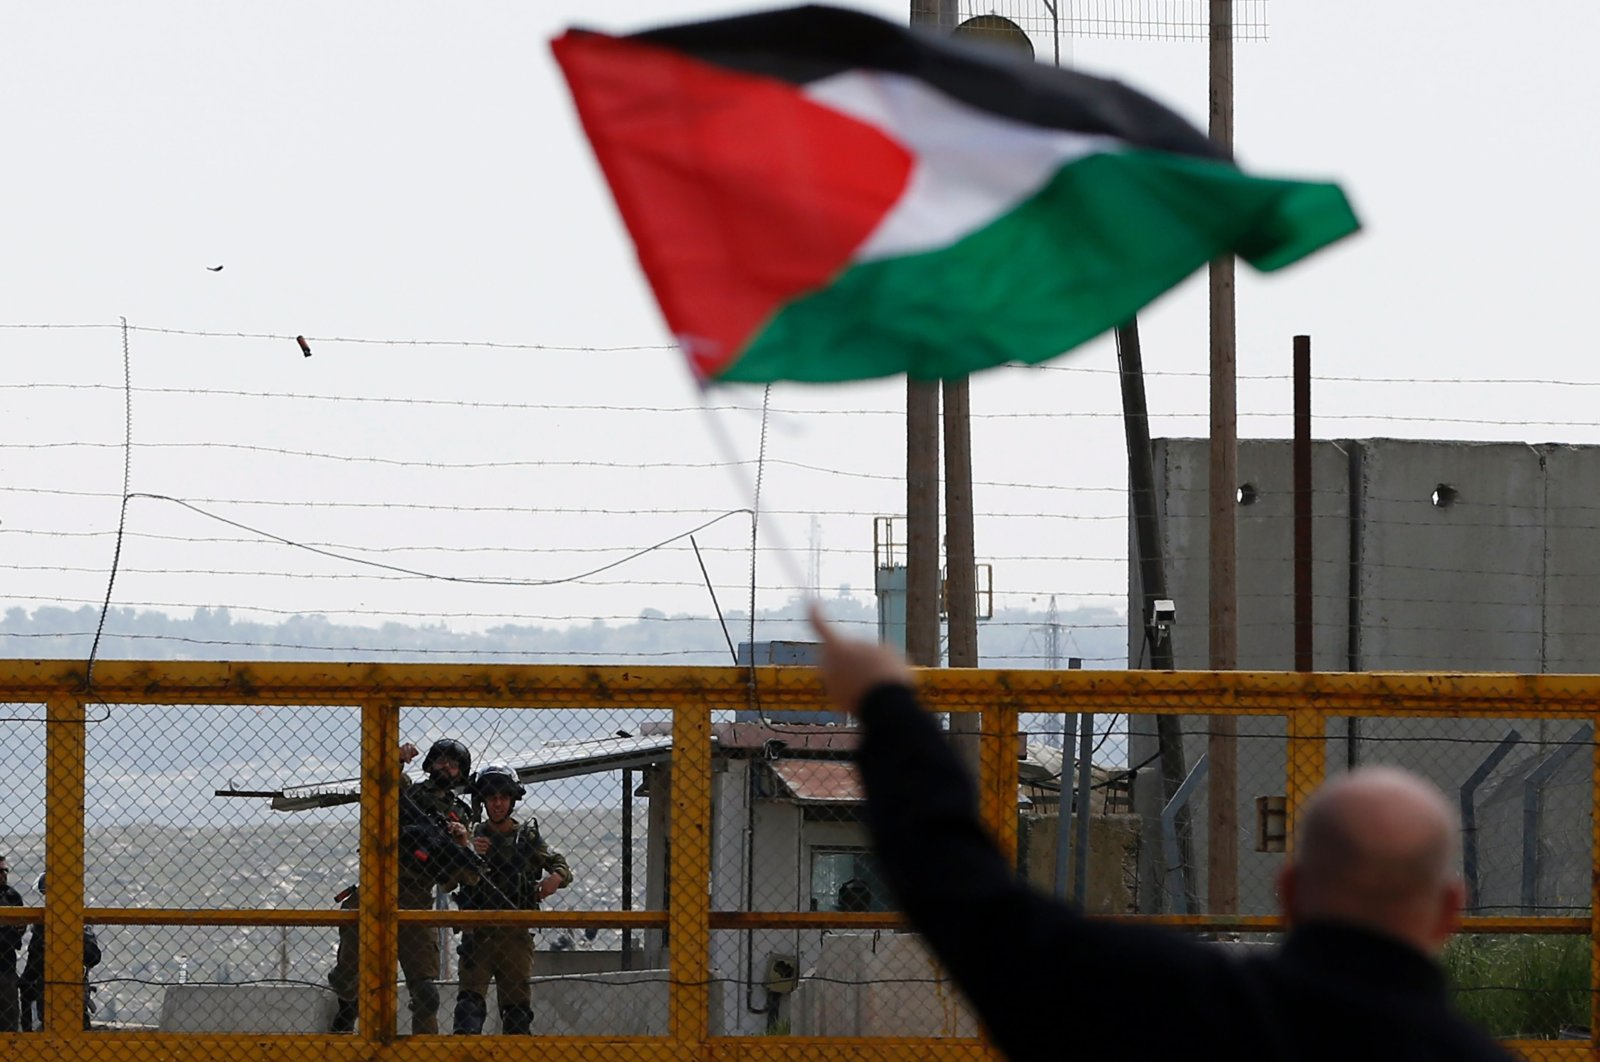 A Palestinian protester waves his national flag in front of Israeli security forces outside the Ofer prison near Betunia in the occupied West Bank, March 30, 2016. (AFP Photo)